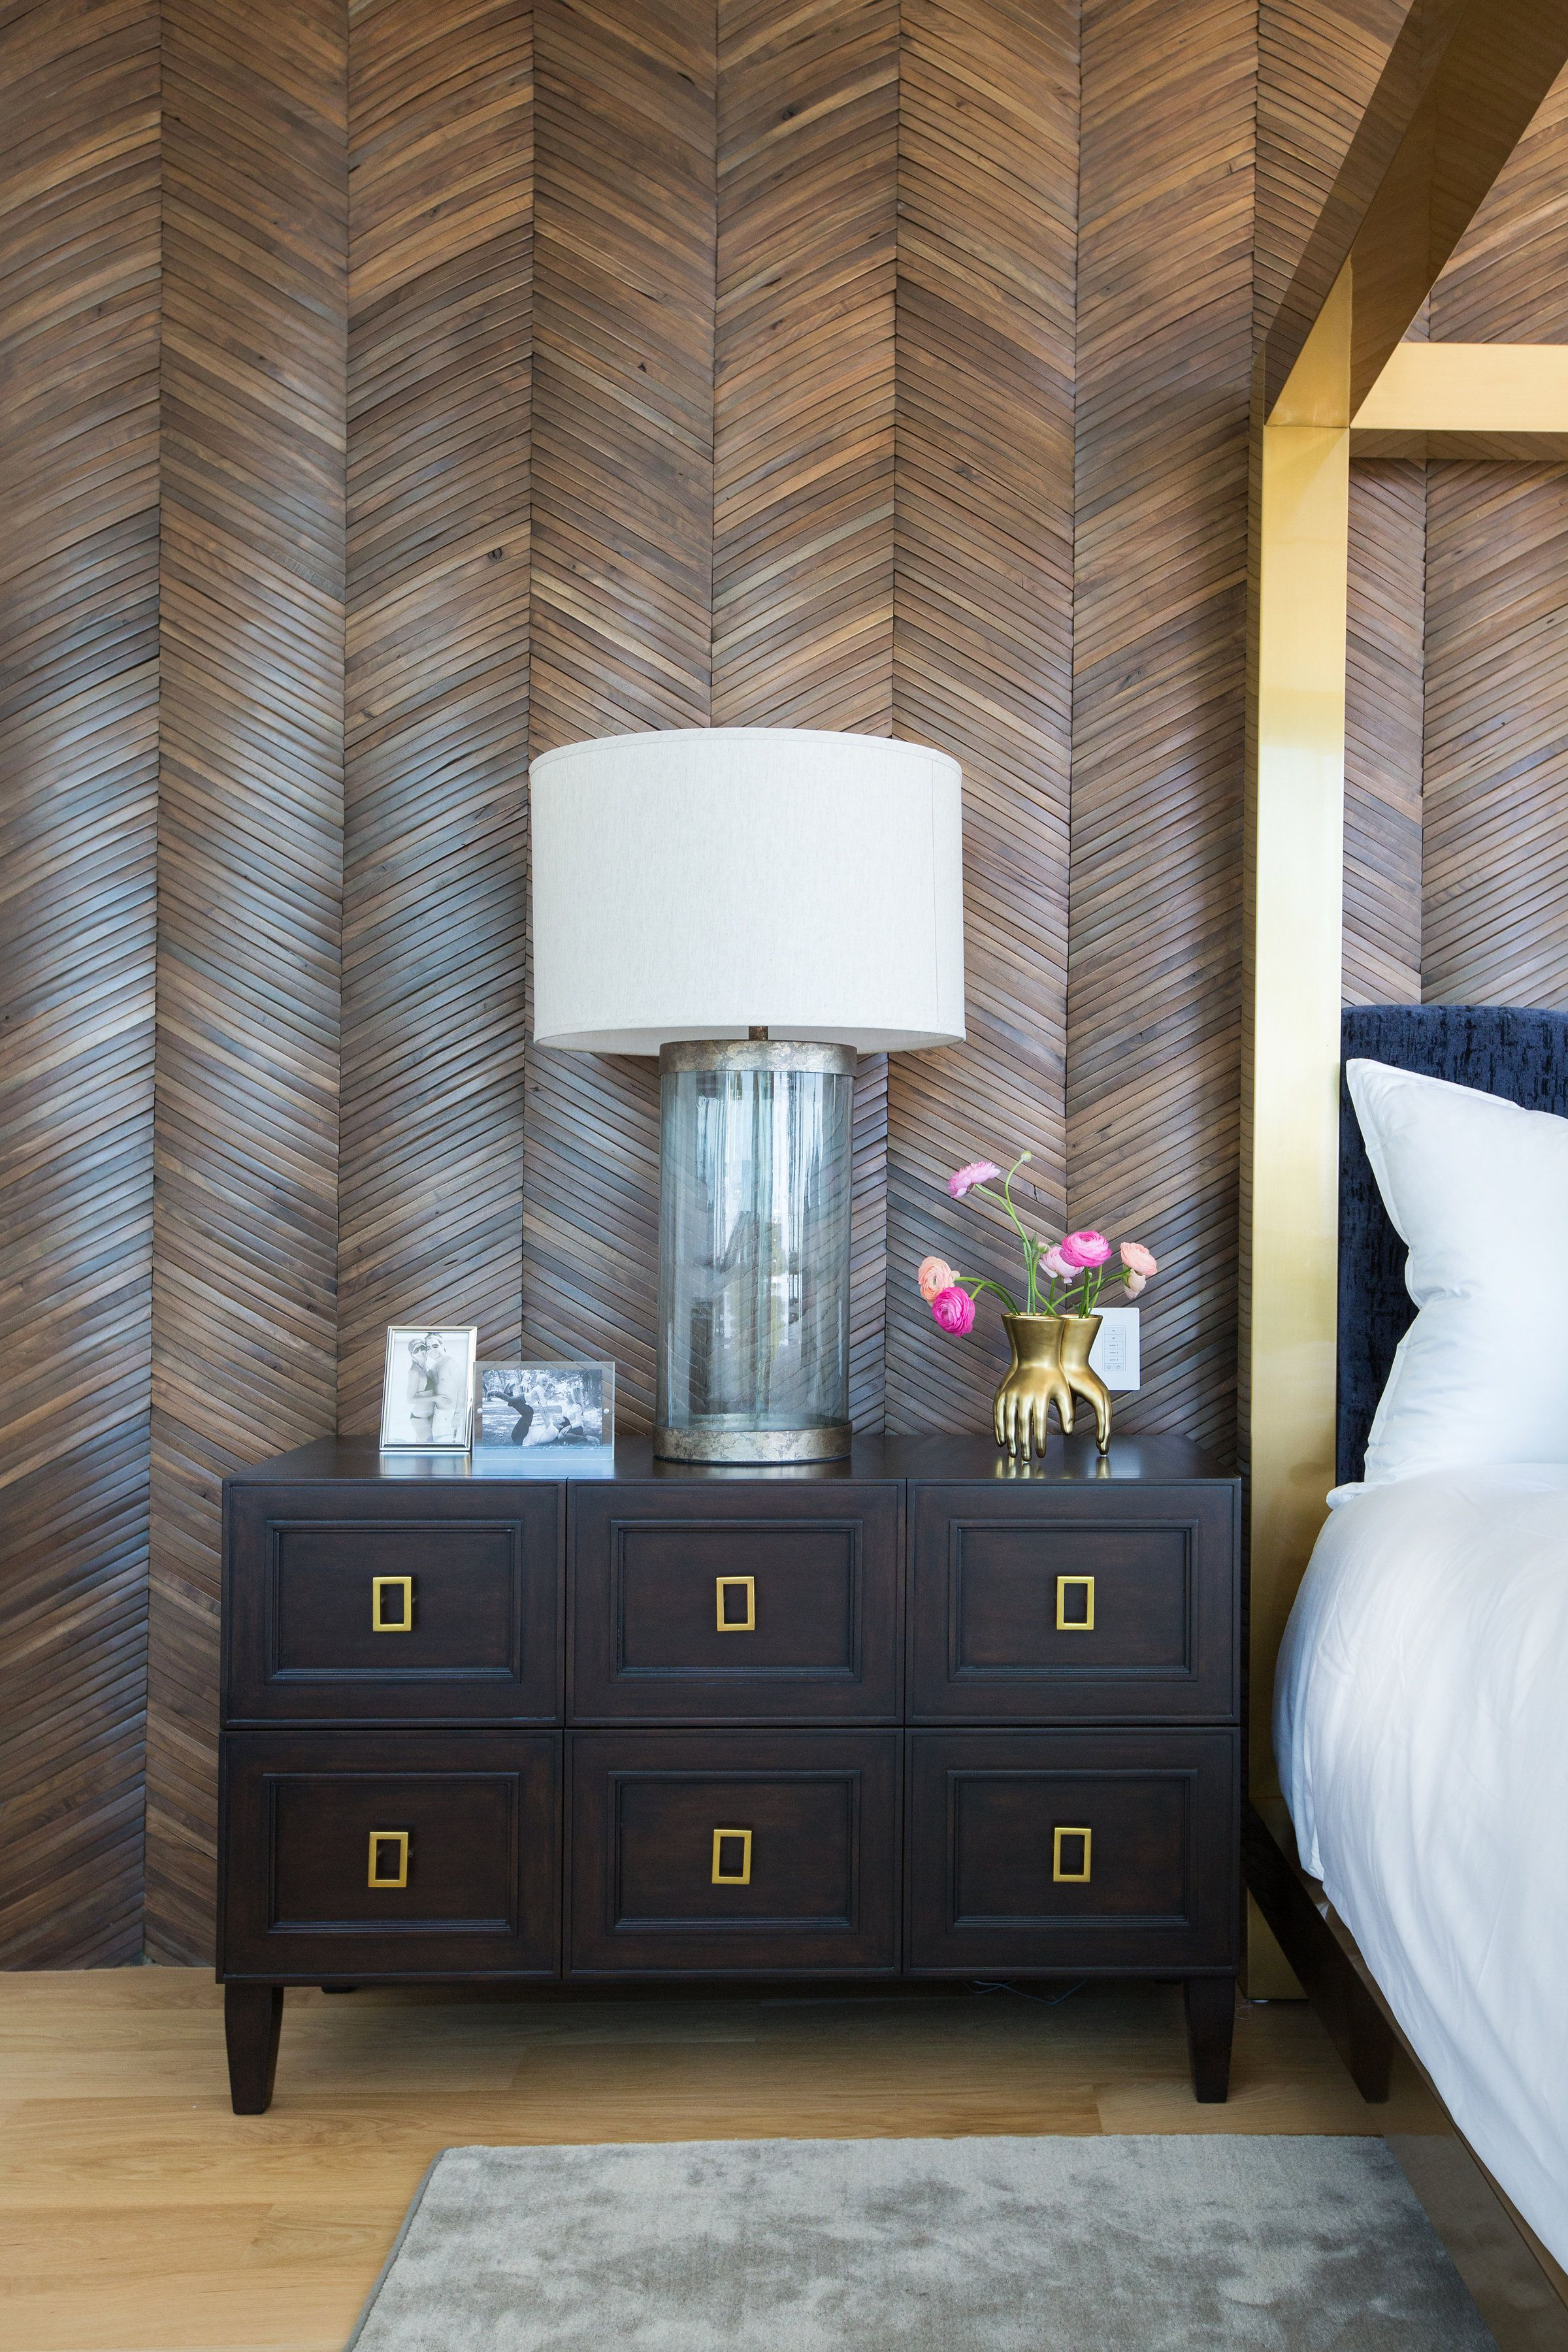 BLOG Accent wall, Large master bedroom ideas, Accent